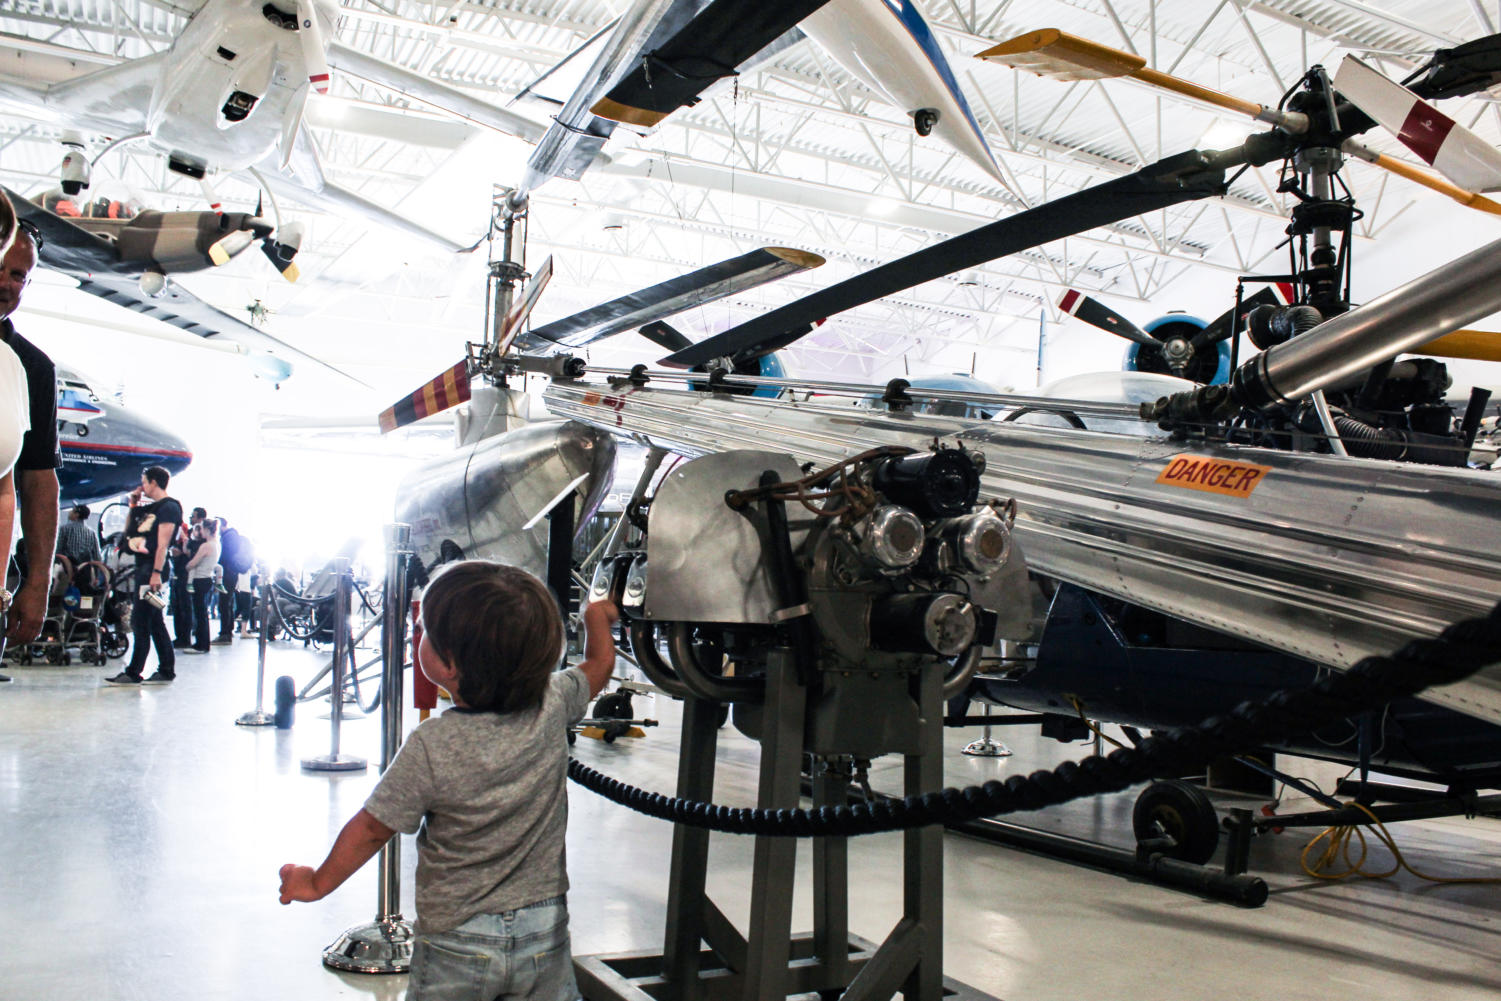 A child explores a plane exhibit in the museum.